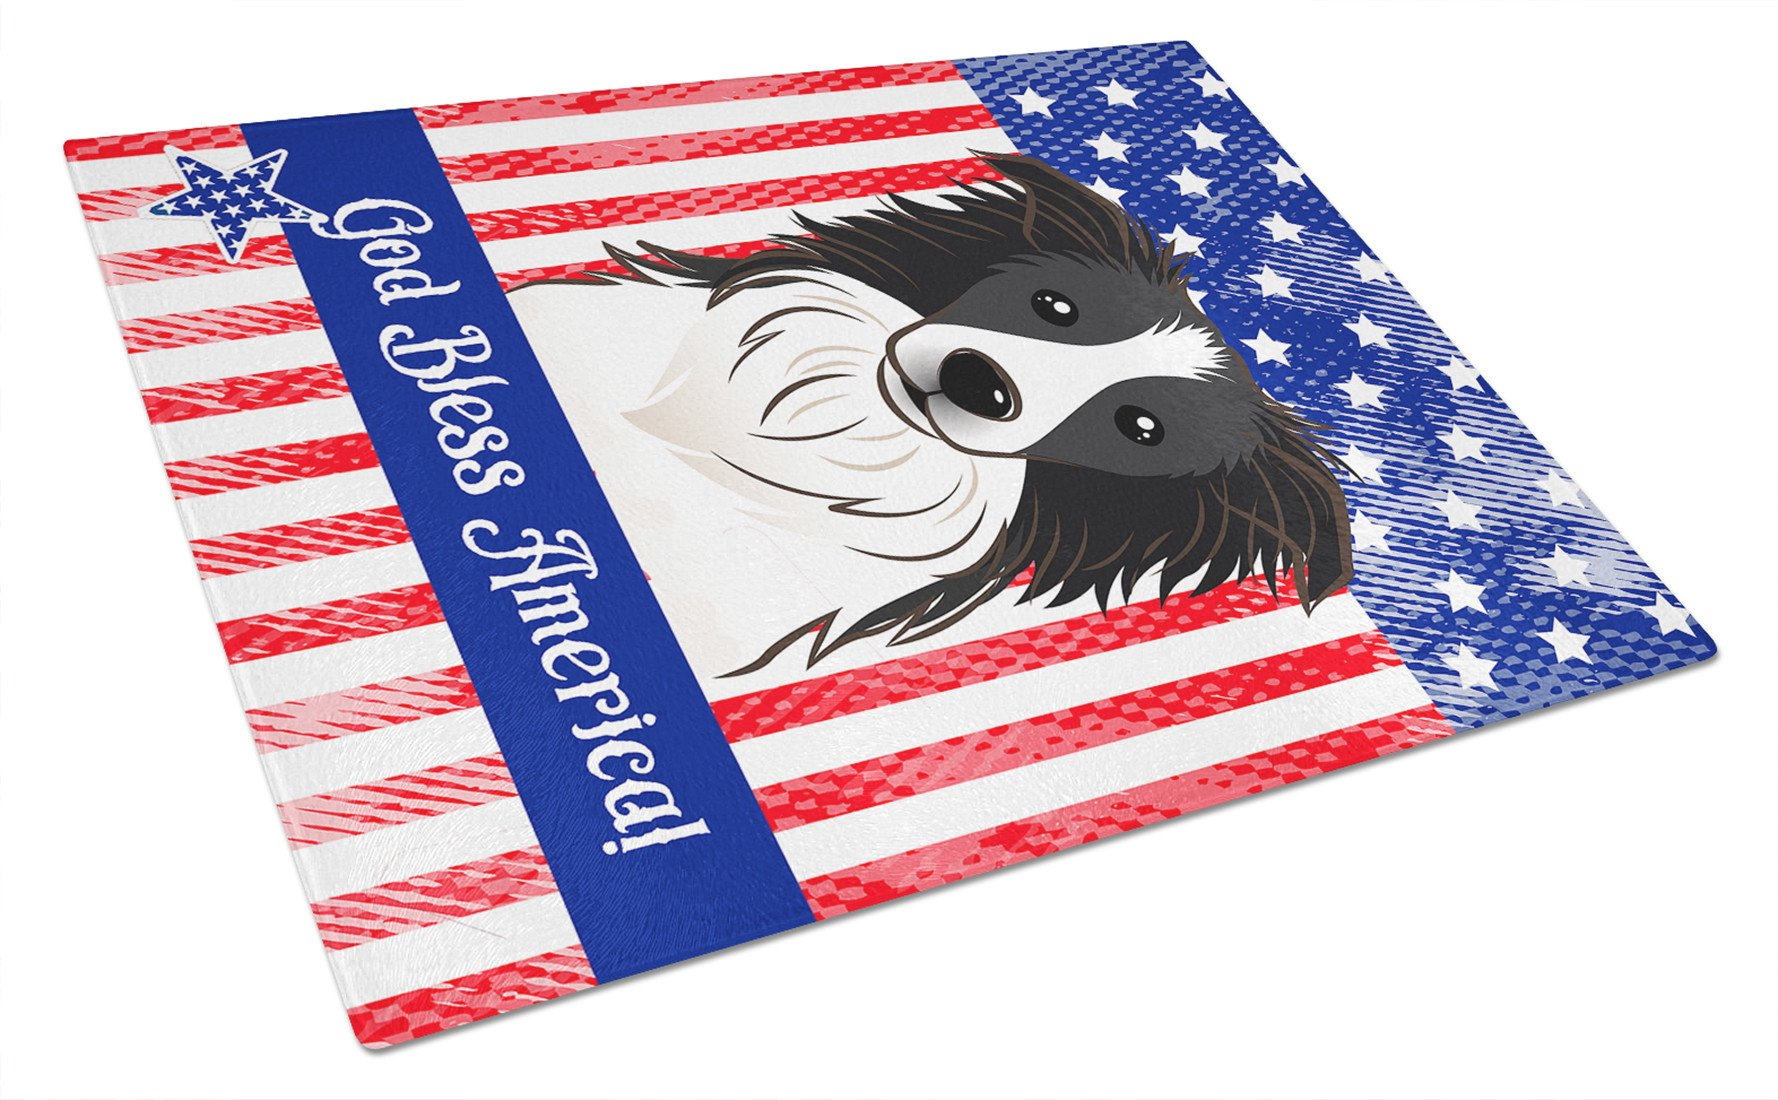 God Bless American Flag with Border Collie Glass Cutting Board Large BB2171LCB by Caroline's Treasures